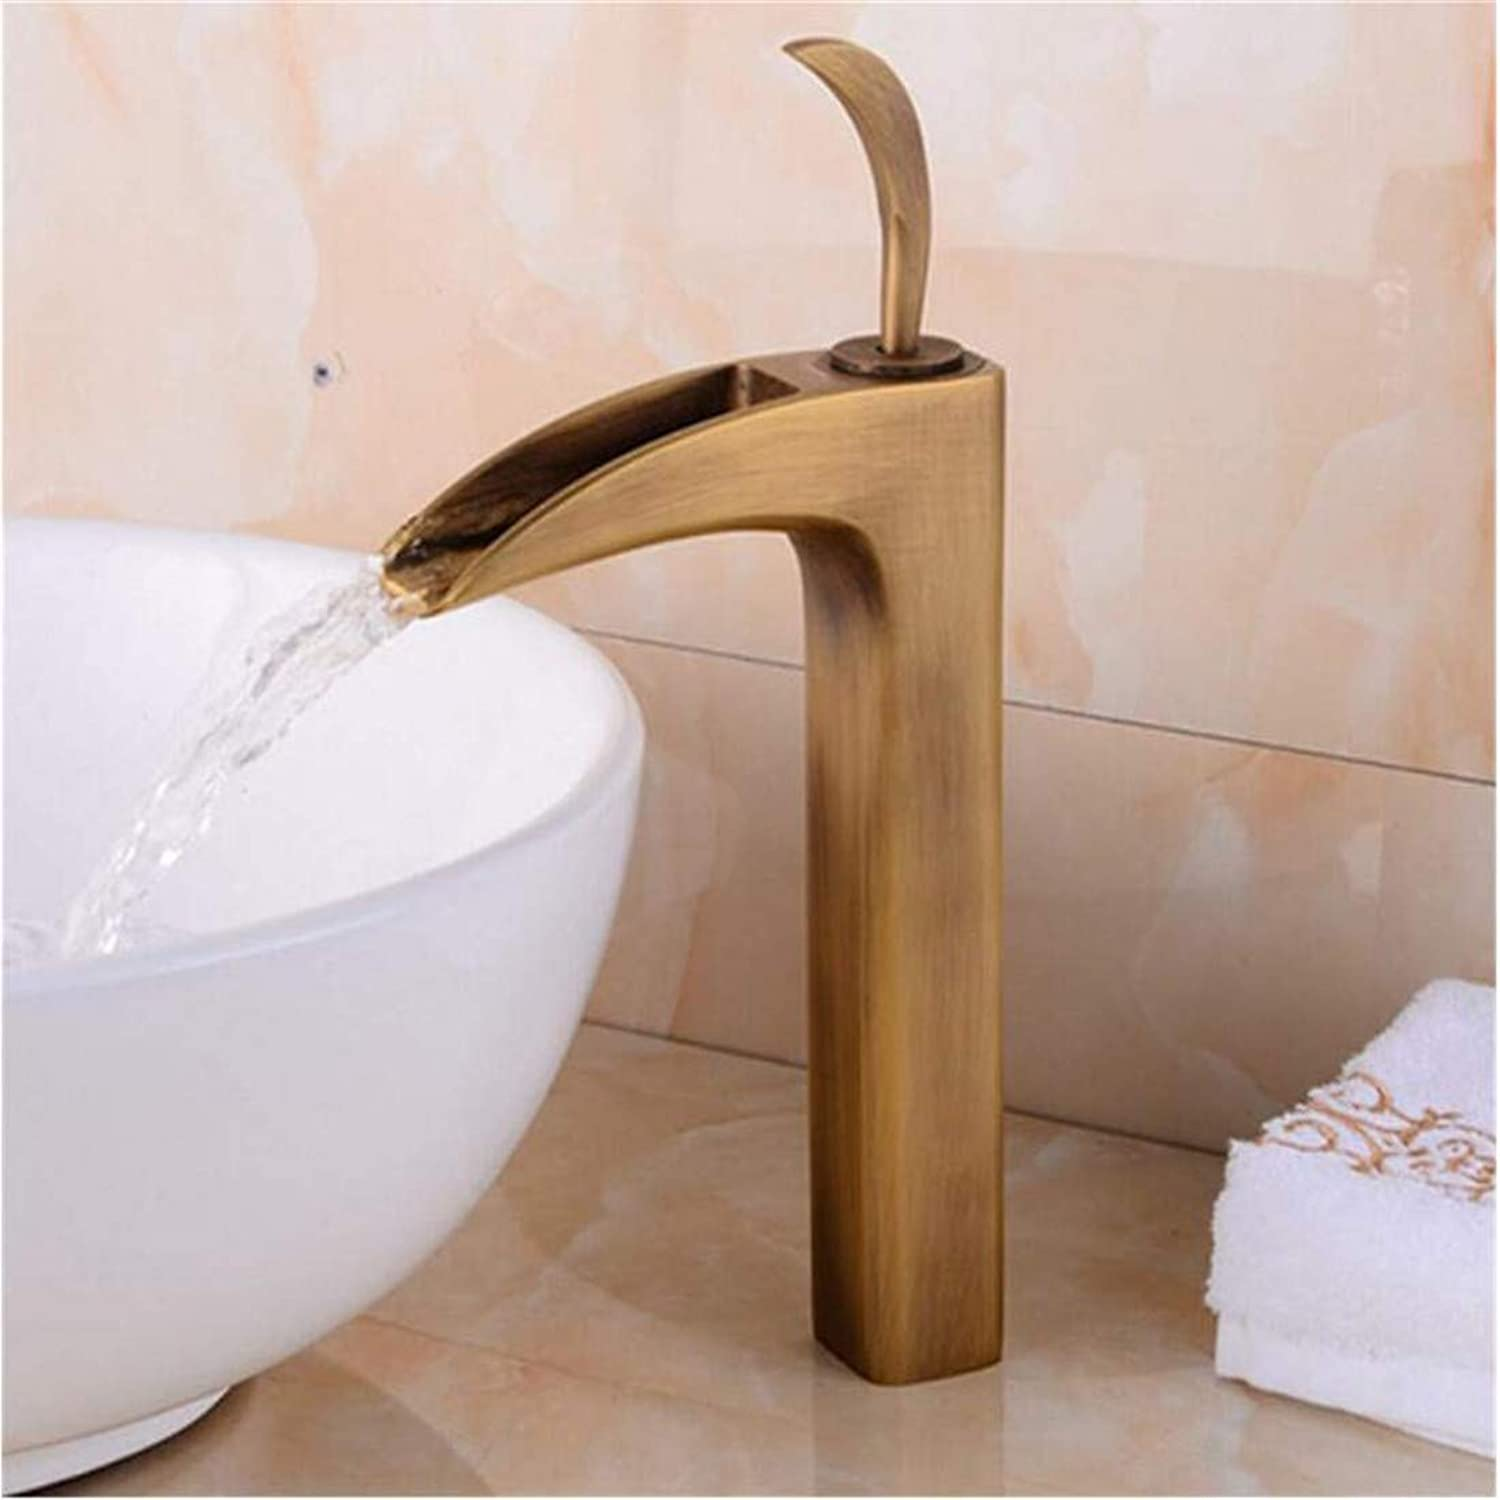 Retro Kitchen Hot and Cold Water 360 Degree redation Faucet Head-Up Vanity Above Counter Basin Antique Hotel Basin Copper Metal Bathroom